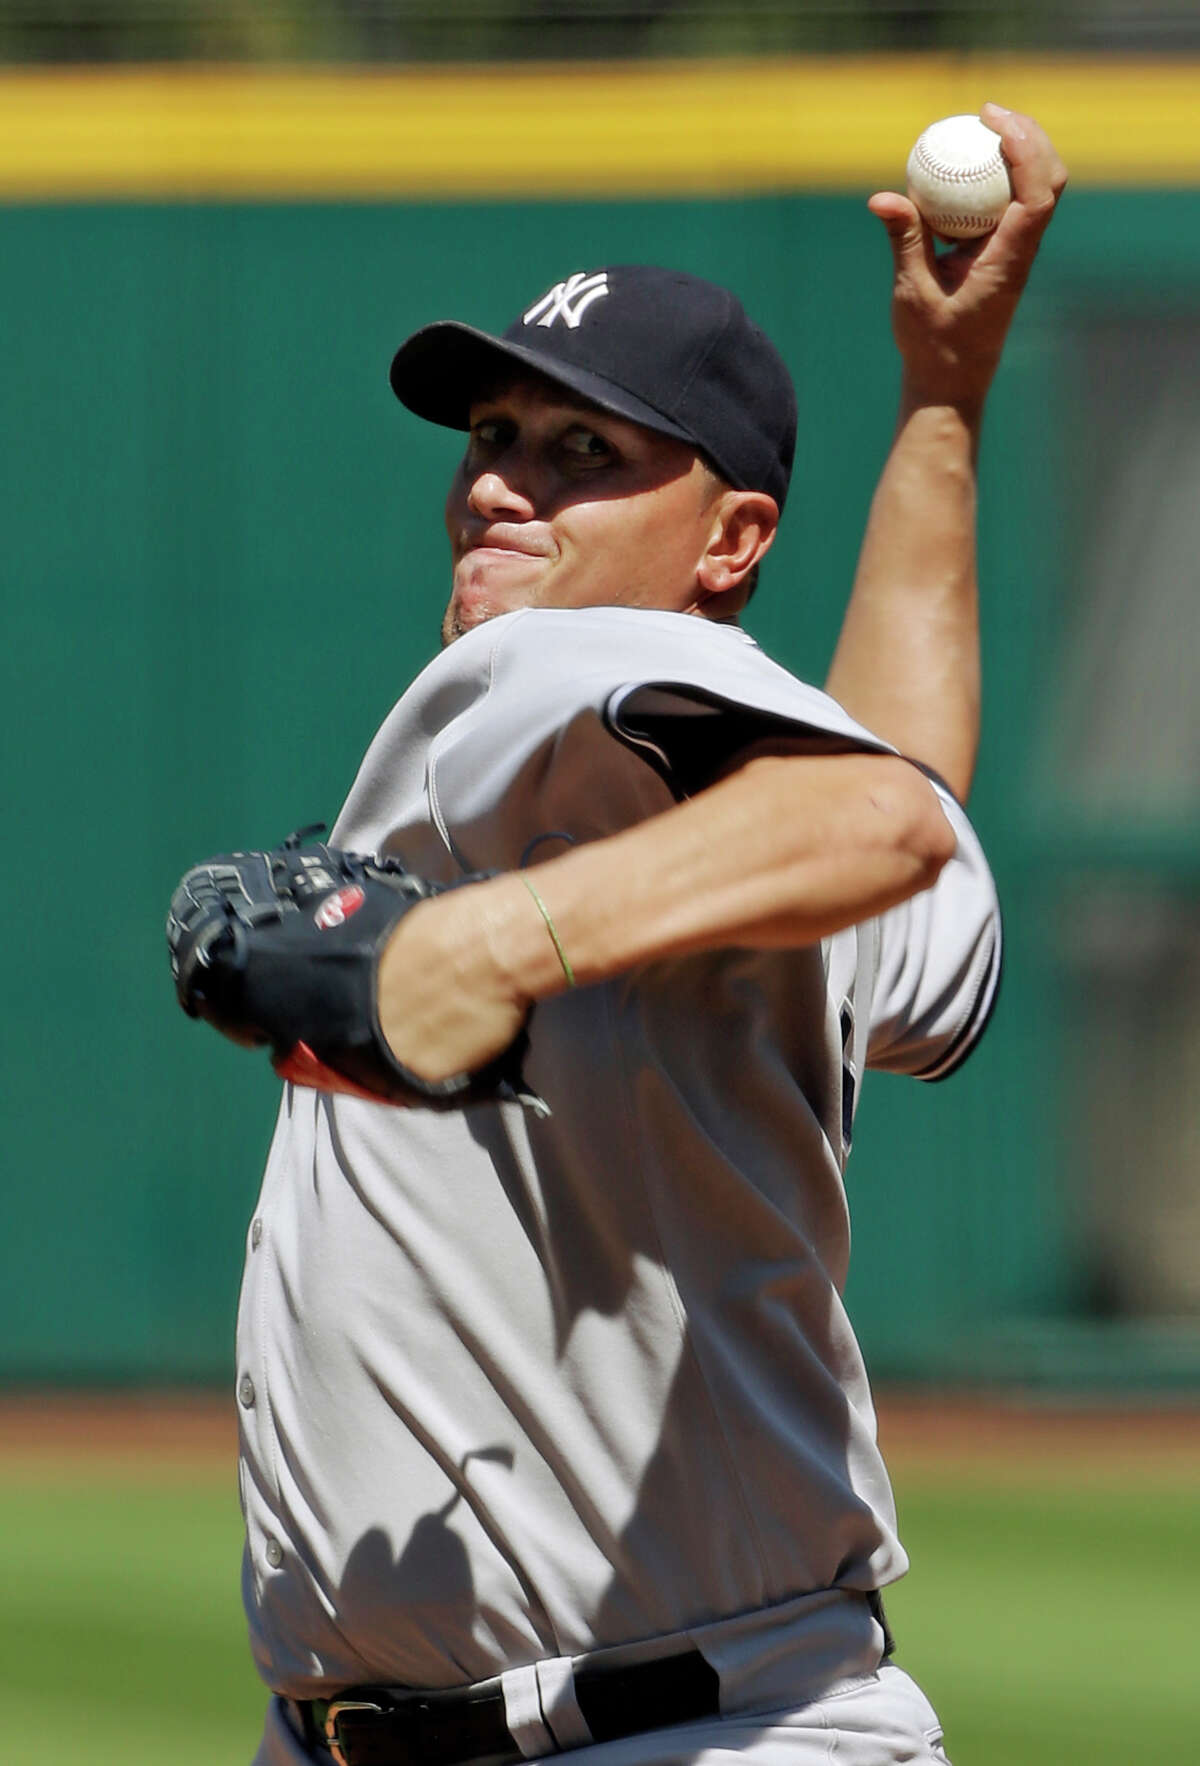 New York Yankees starting pitcher Freddy Garcia delivers against the Cleveland Indians in the first inning of a baseball game on Sunday, Aug. 26, 2012, in Cleveland. (AP Photo/Mark Duncan)